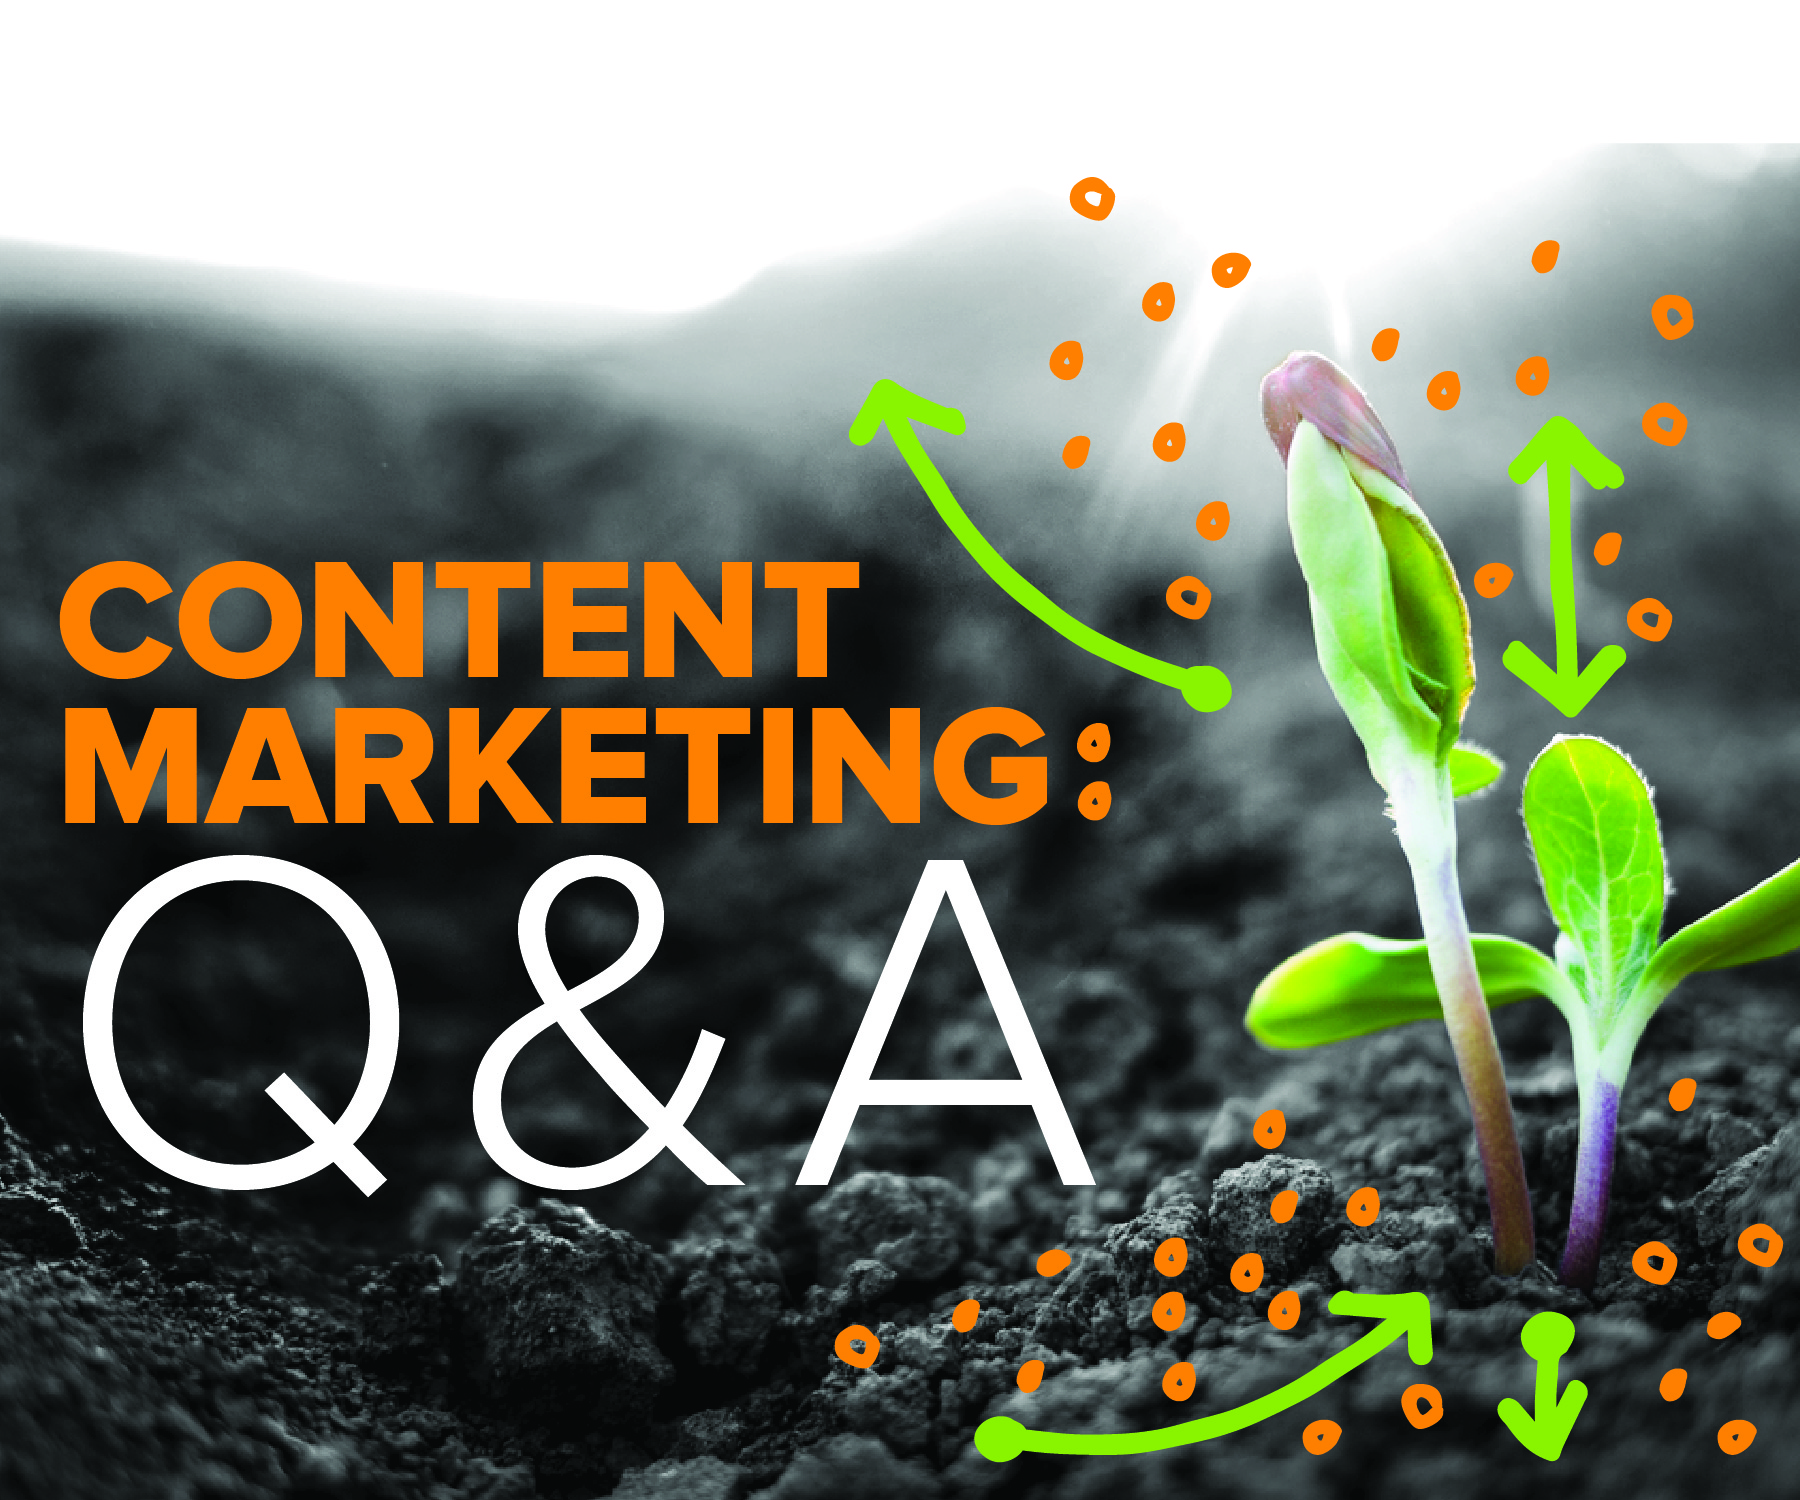 In preparation of our content marketing Q&A, hosts Katherine Griwert and Francis Ma give us exclusive insights.